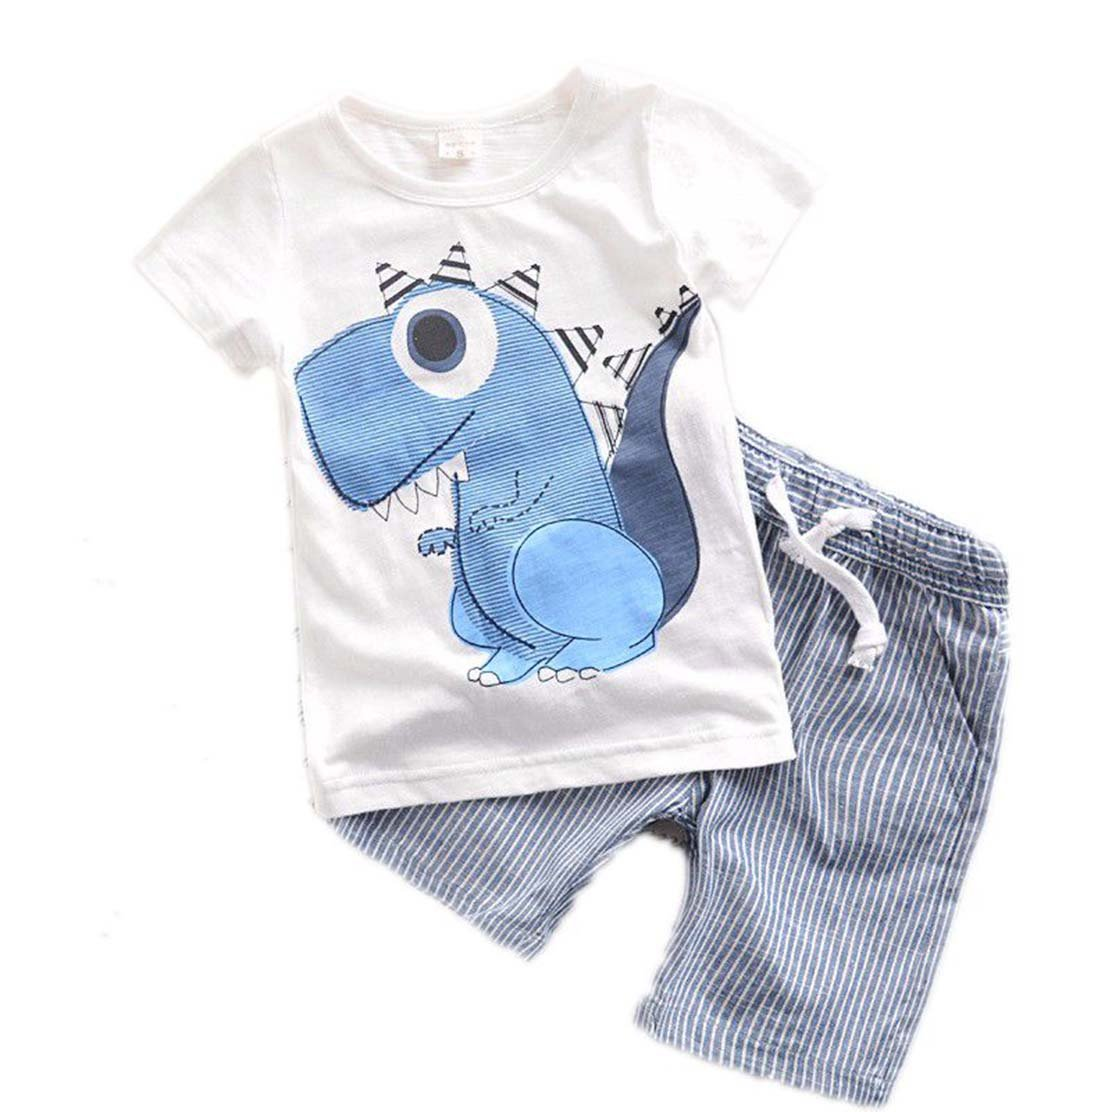 daqinghjxg New Children Baby Boys Clothes Cartoon Kids Clothing Sets T Shirt+Shorts